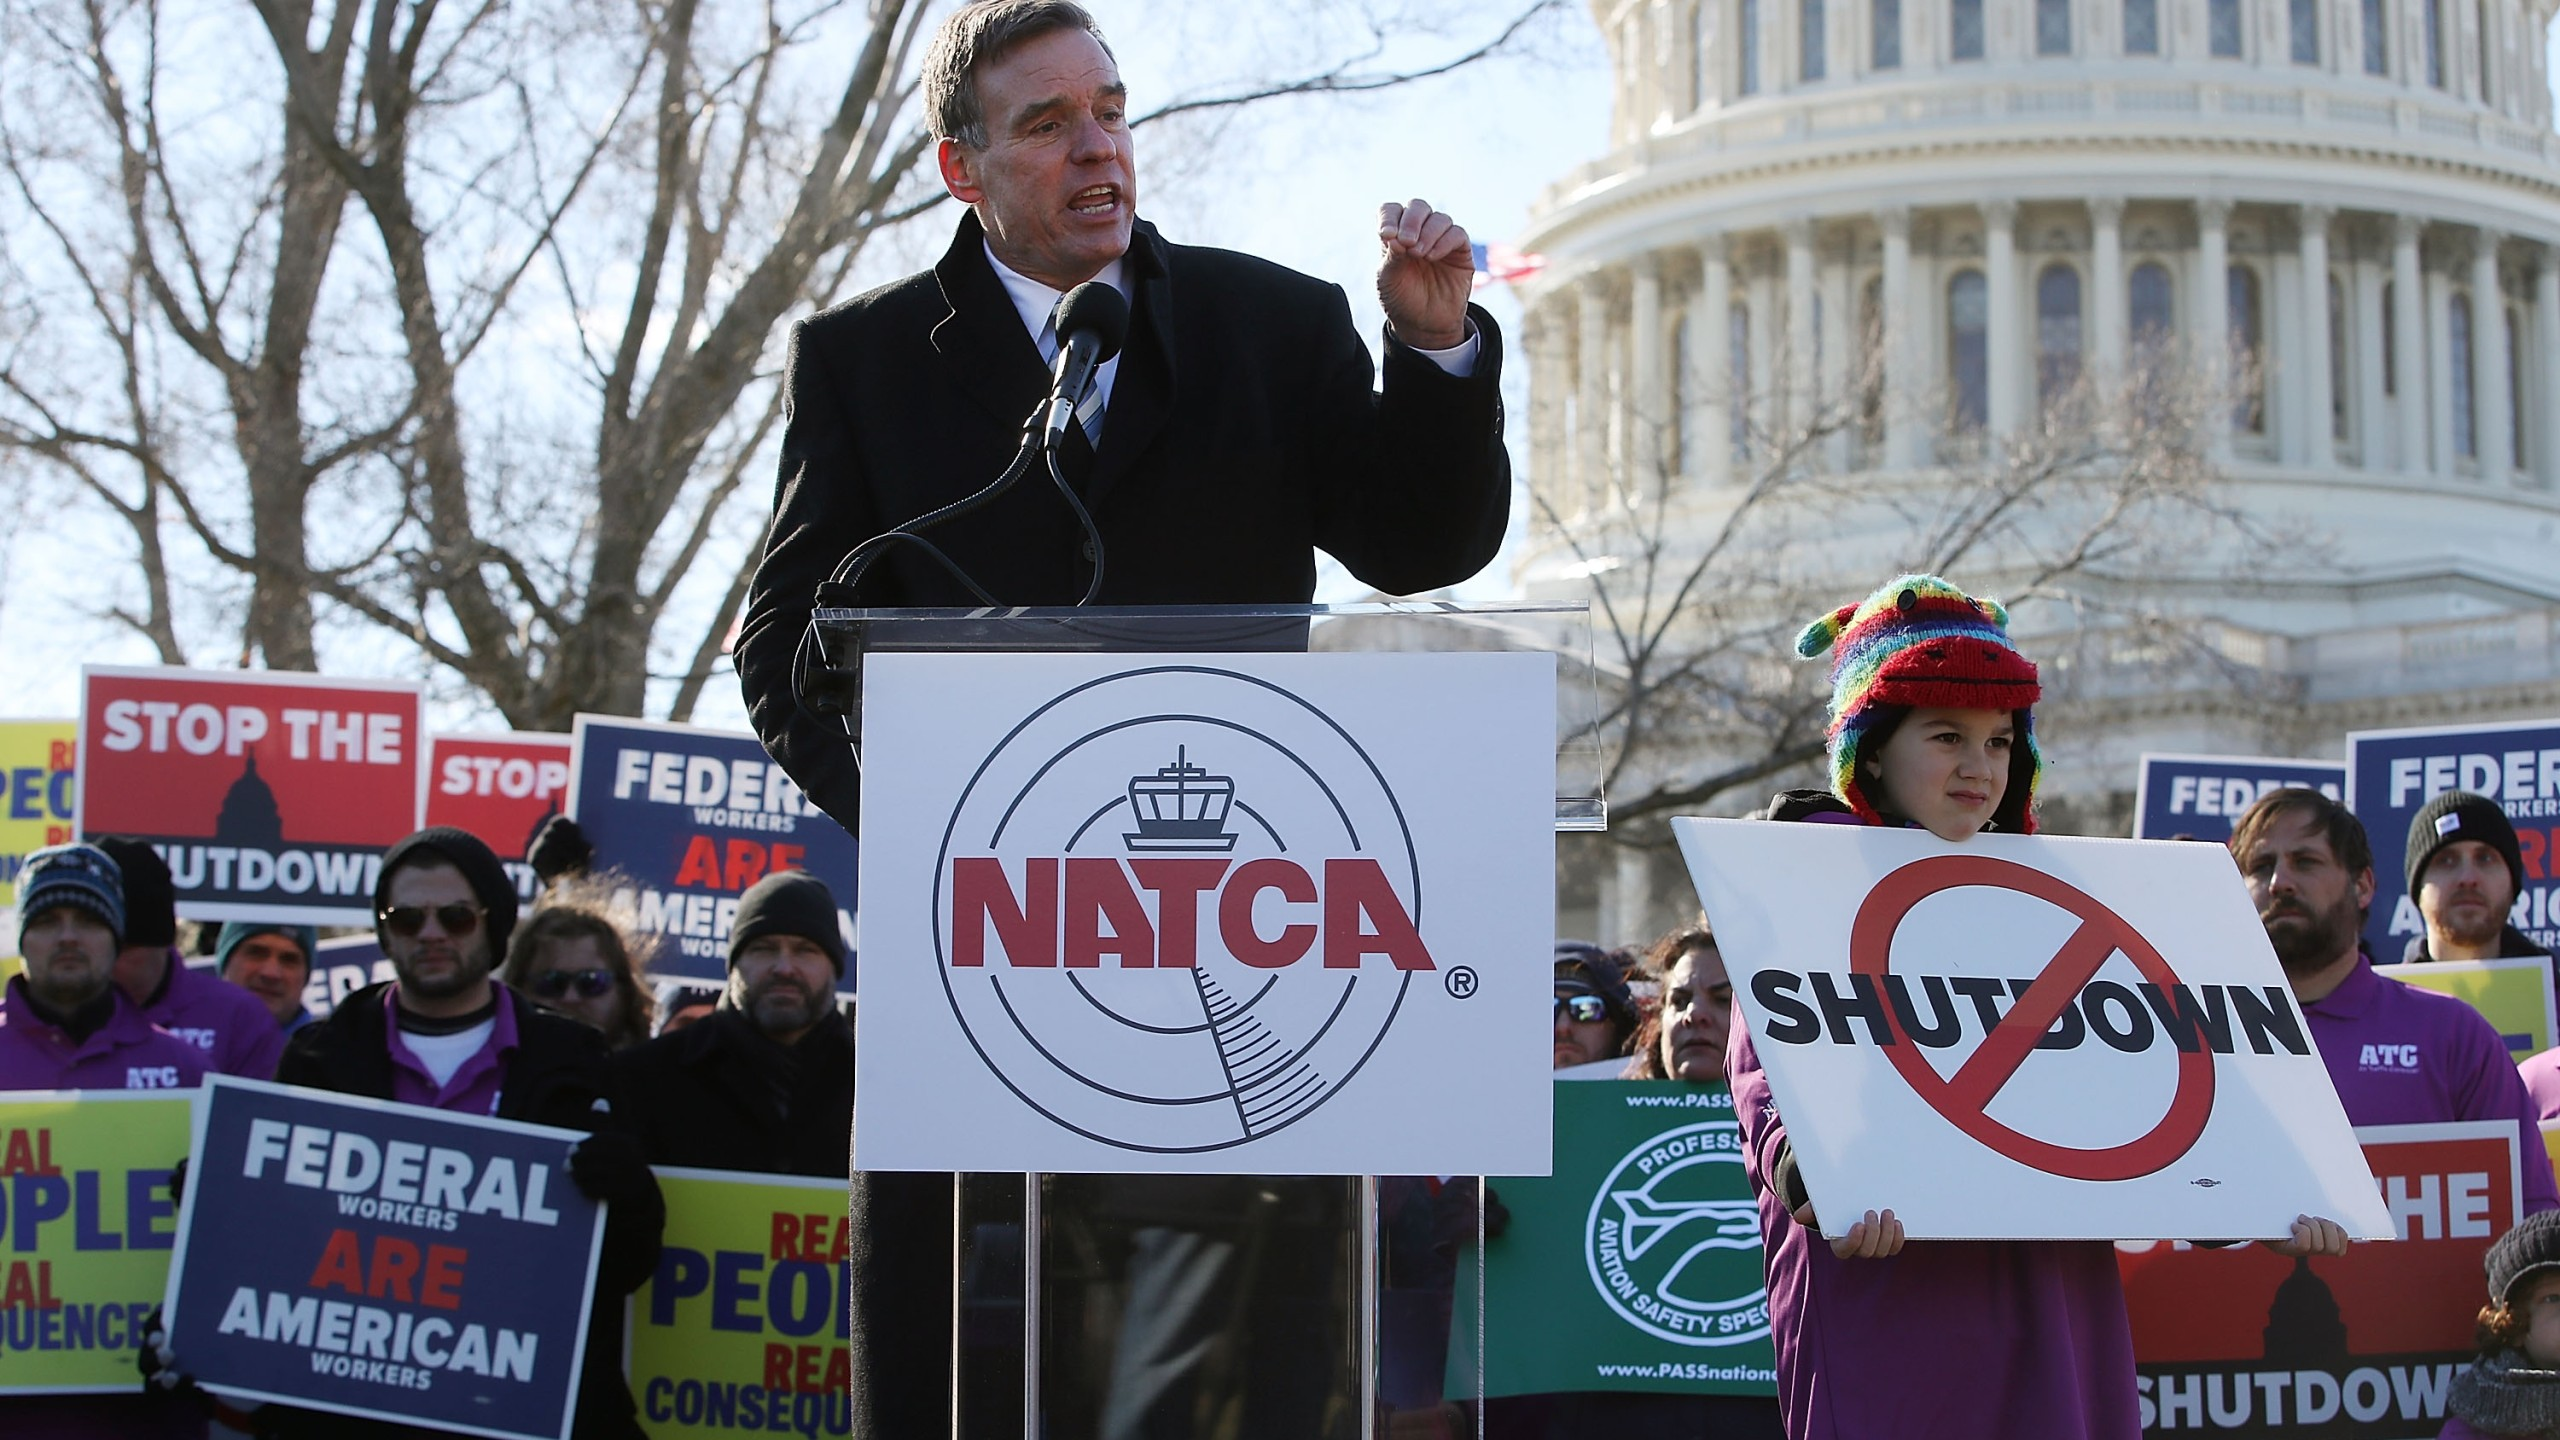 U.S. Sen. Mark Warner (D-VA) speaks while flanked by furloughed workers during a protest hosted by the National Air Traffic Controllers Association on Capitol Hill on Jan. 10, 2019. (Credit: Mark Wilson/Getty Images)